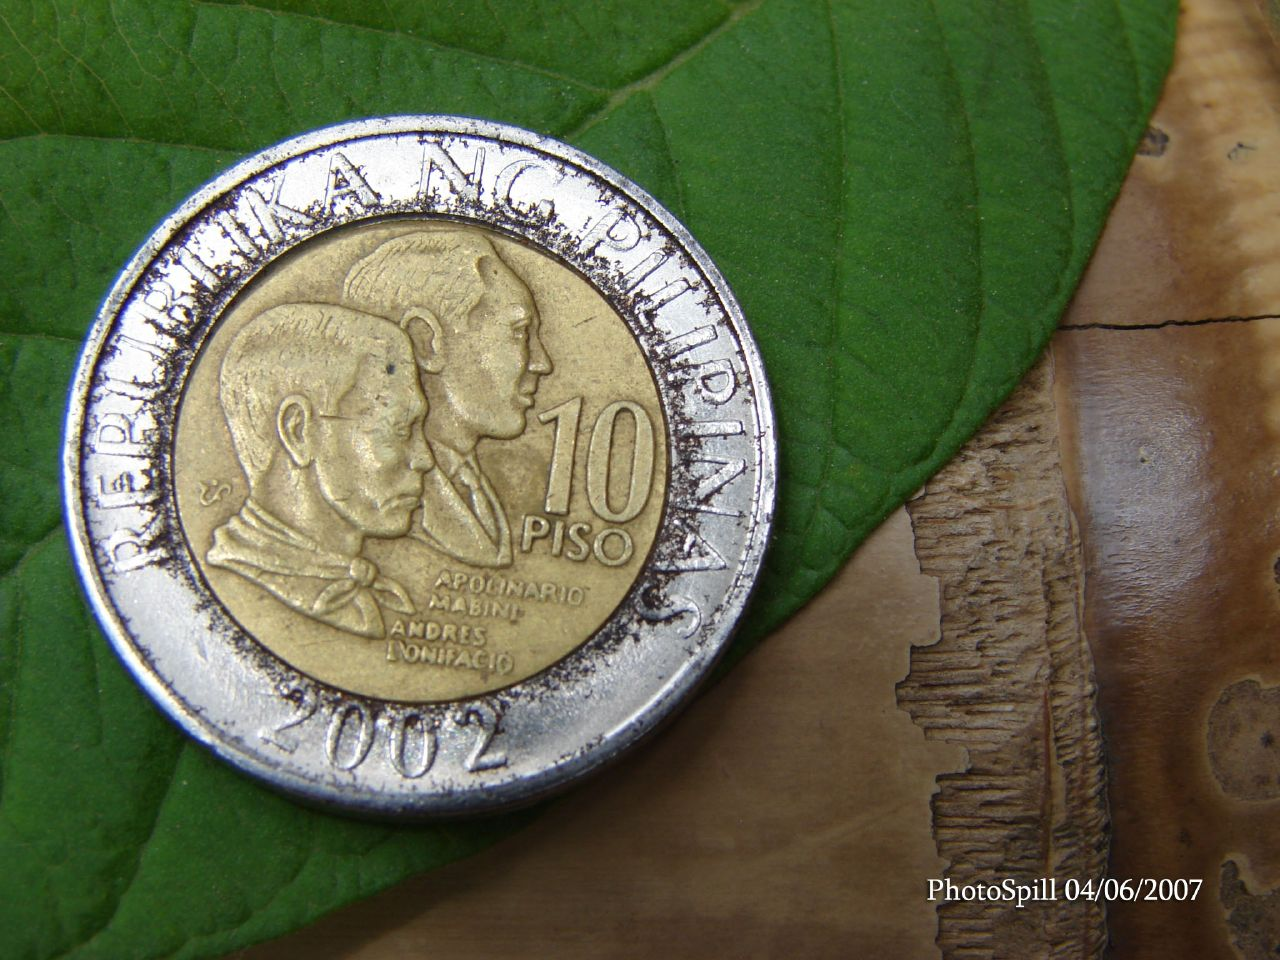 Philippine Money - Peso Coins and Banknotes: April 2007